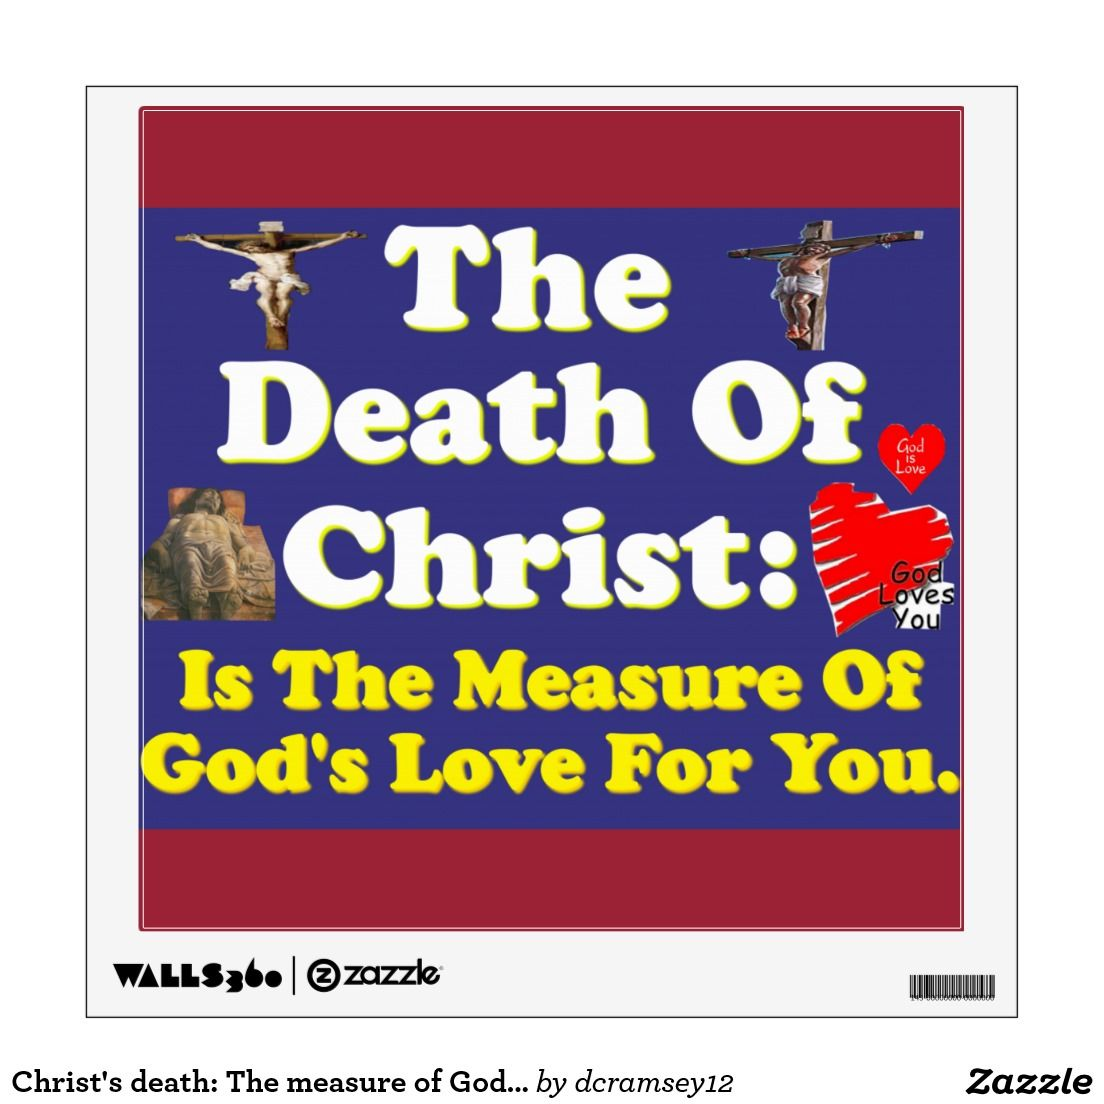 THE DEATH OF CHRIST: IS THE MEASURE OF GOD'S LOVE FOR YOU lets us know that the death of Christ on the cross is the measurement of the love God have for us. God loved us so much he was willing to allow his Son to die on the cross for the penalty of our sins! Jesus was also willing to pay that price because of his love for us. Order your copy of the wall decal with this beautiful image on it today! $22.70 per wall decal.